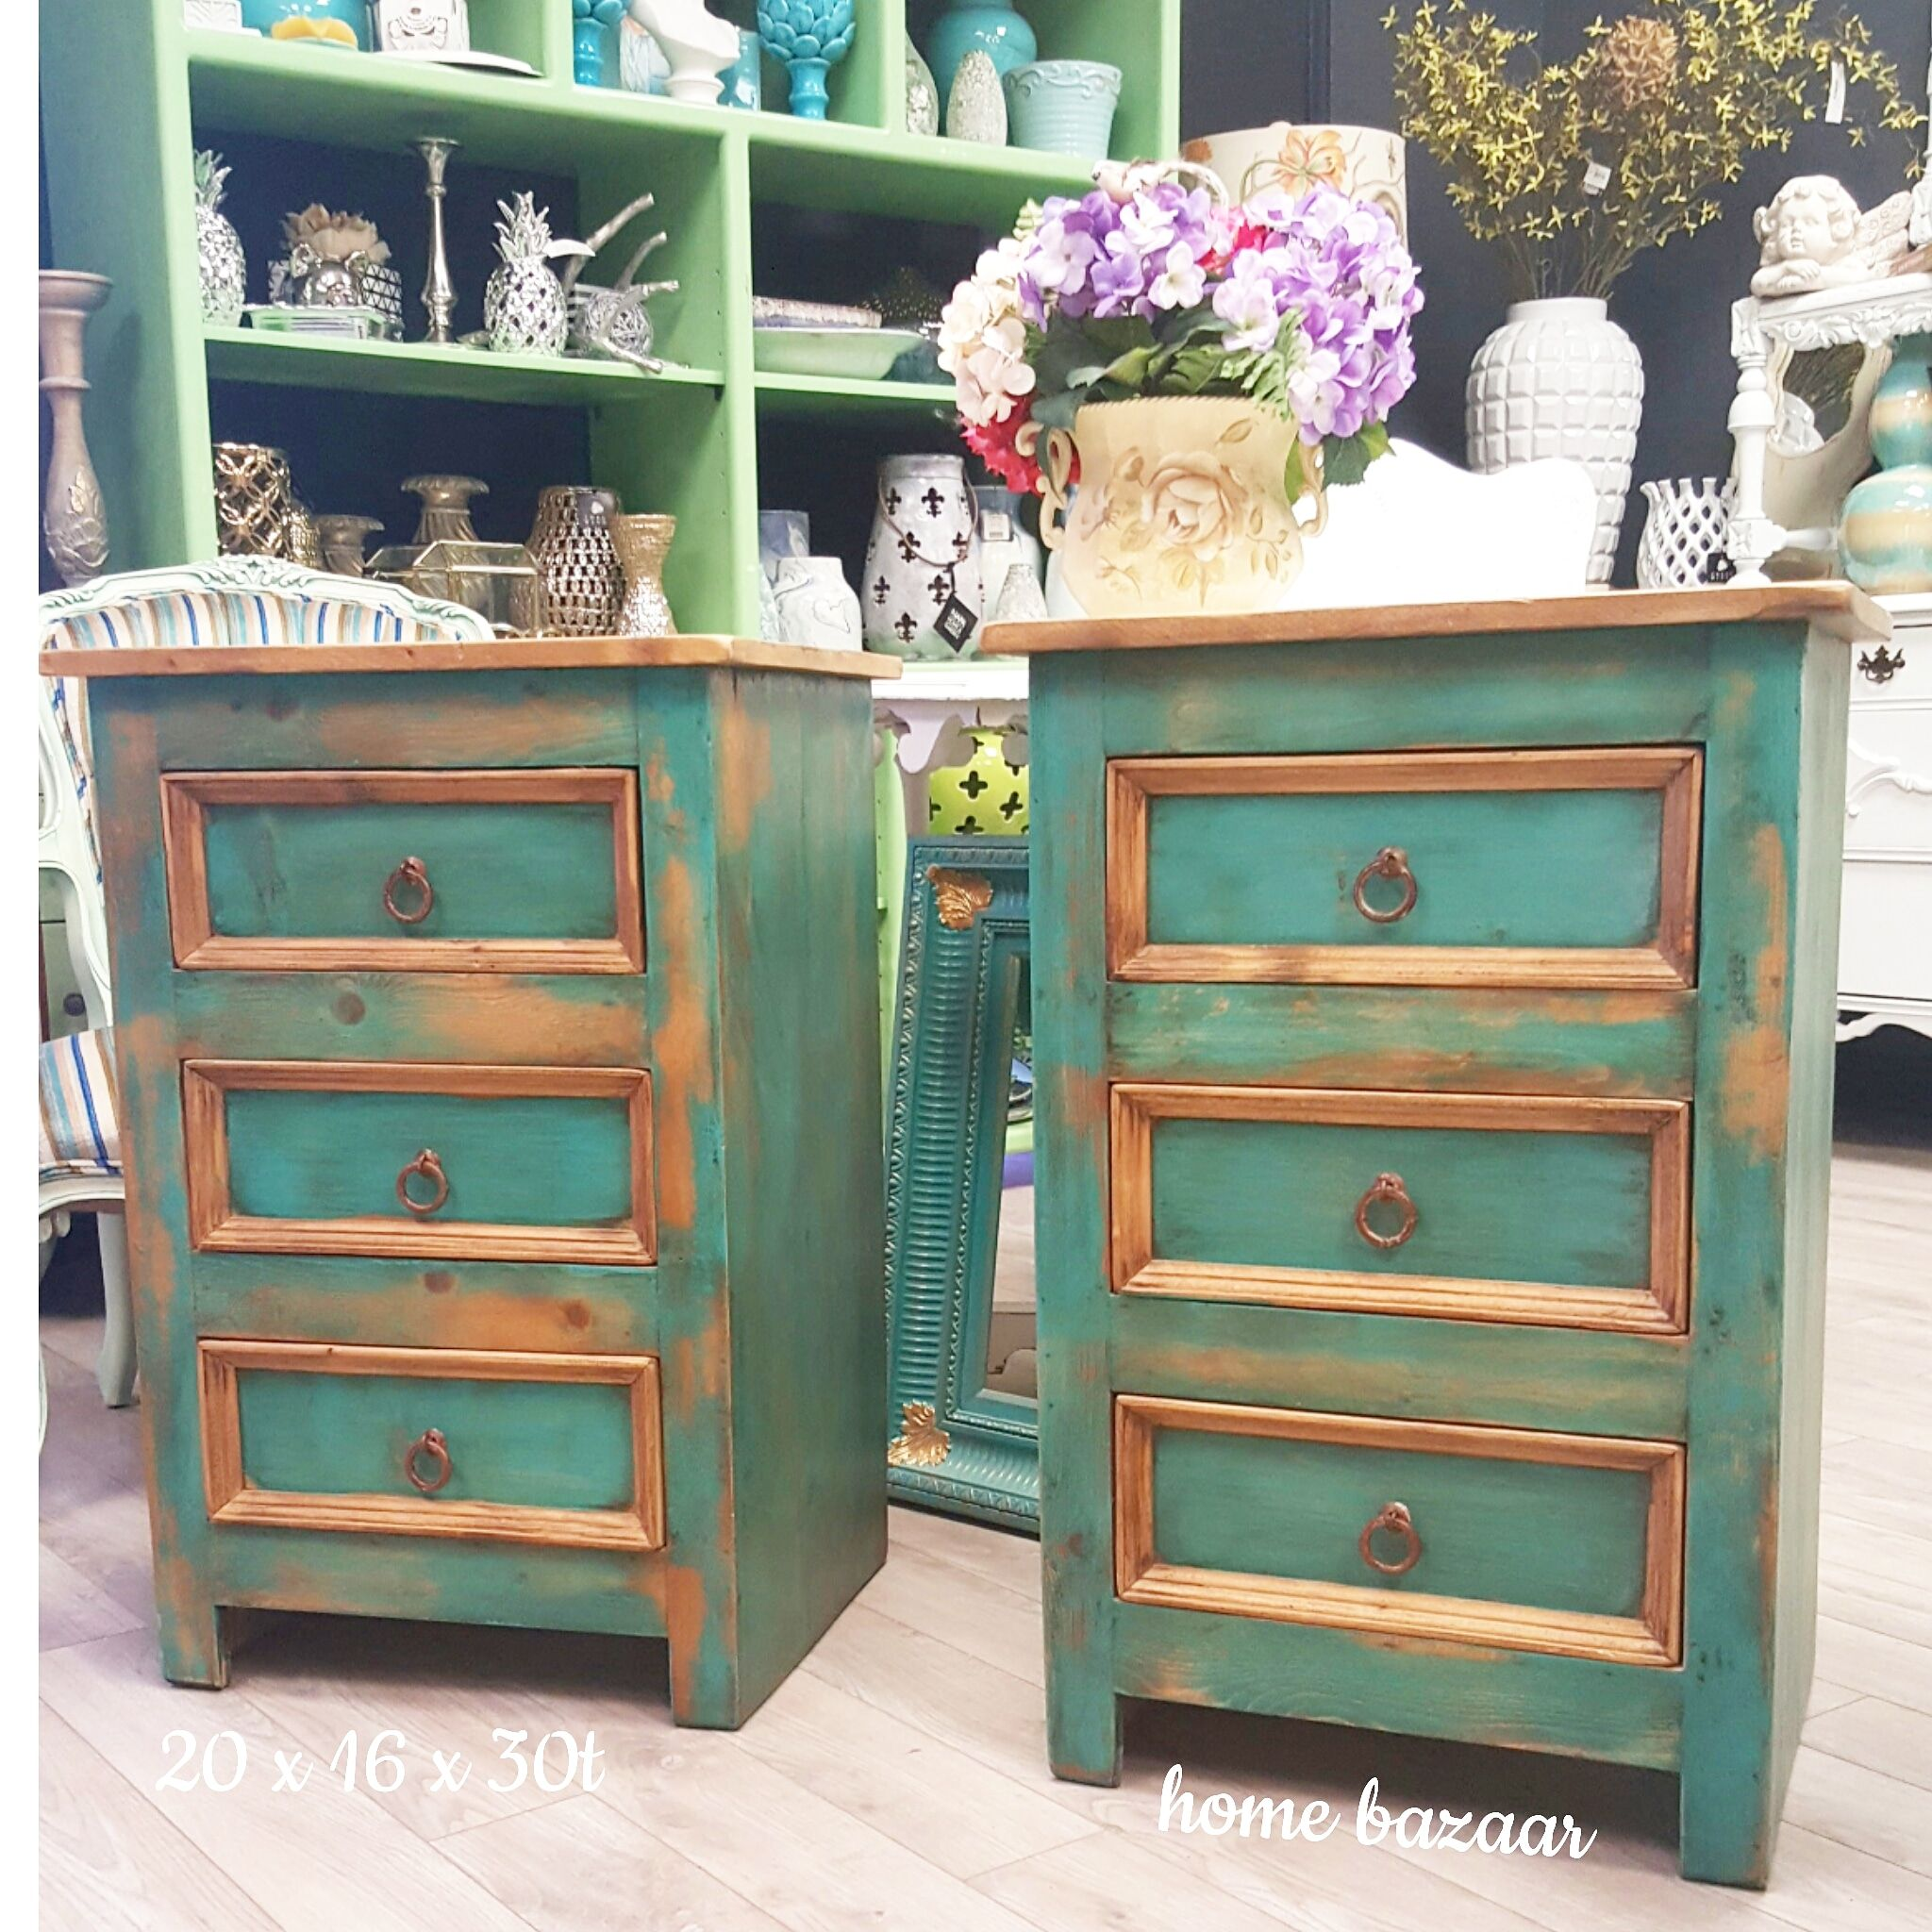 Rustic Chic Matching Pair Tall Chest Of Drawers In Teal Blonde Www Homebazaar Us Www Instagram Com Home Bazaar W Rustic Chic Tall Chest Shabby Chic Furniture